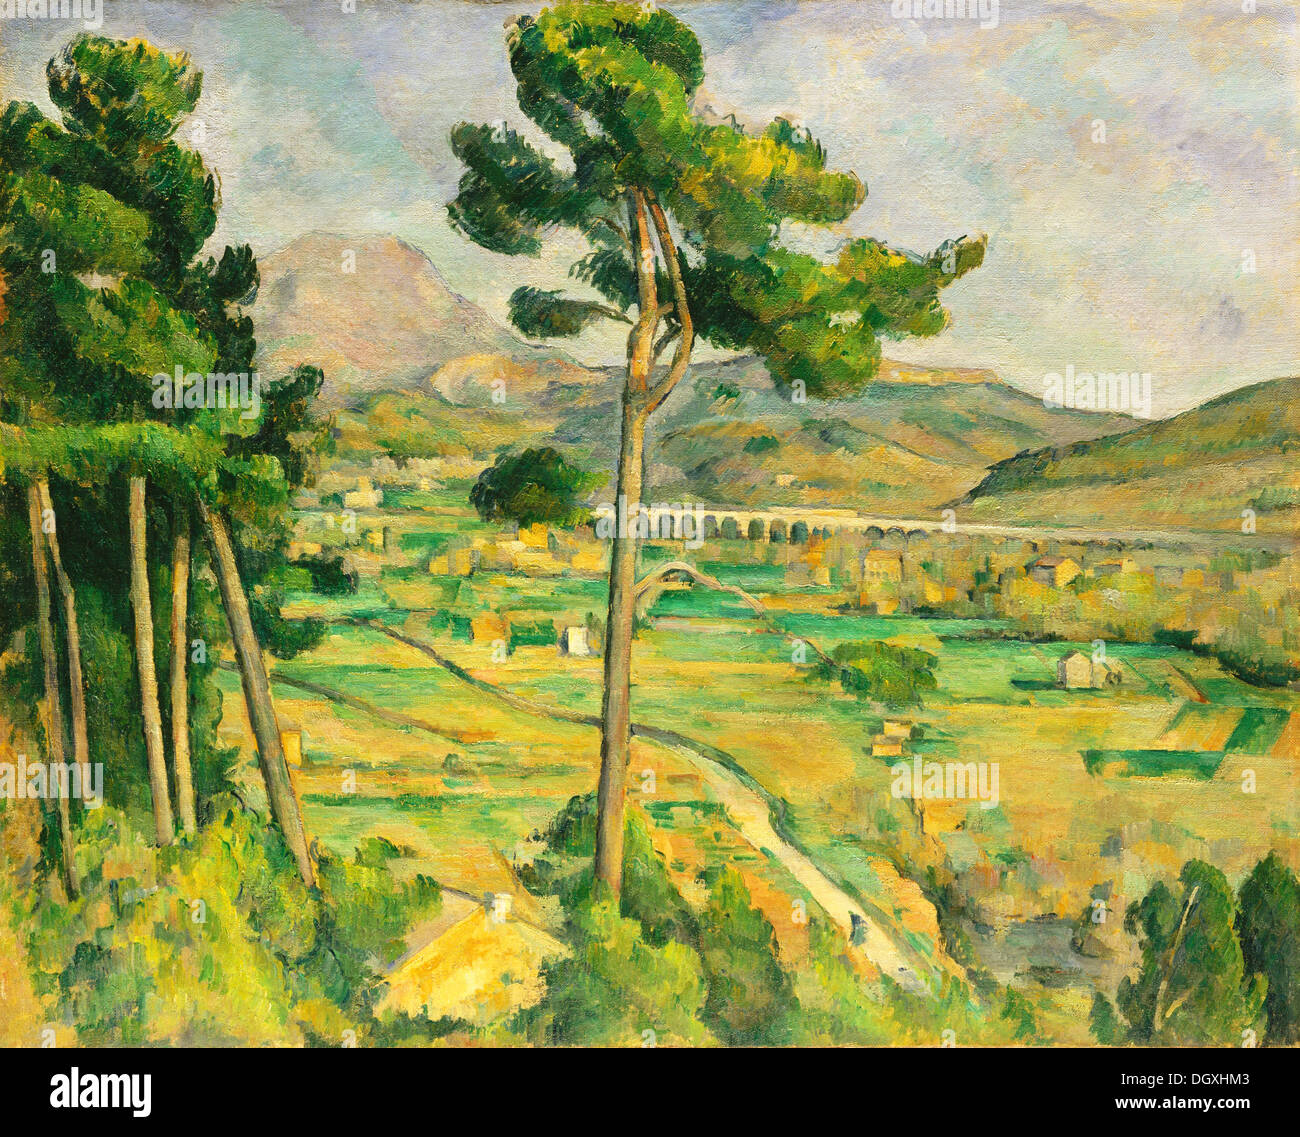 Mont Sainte-Victoire and the Viaduct of the Arc River Valley - by Paul Cézanne, 1885 - Stock Image